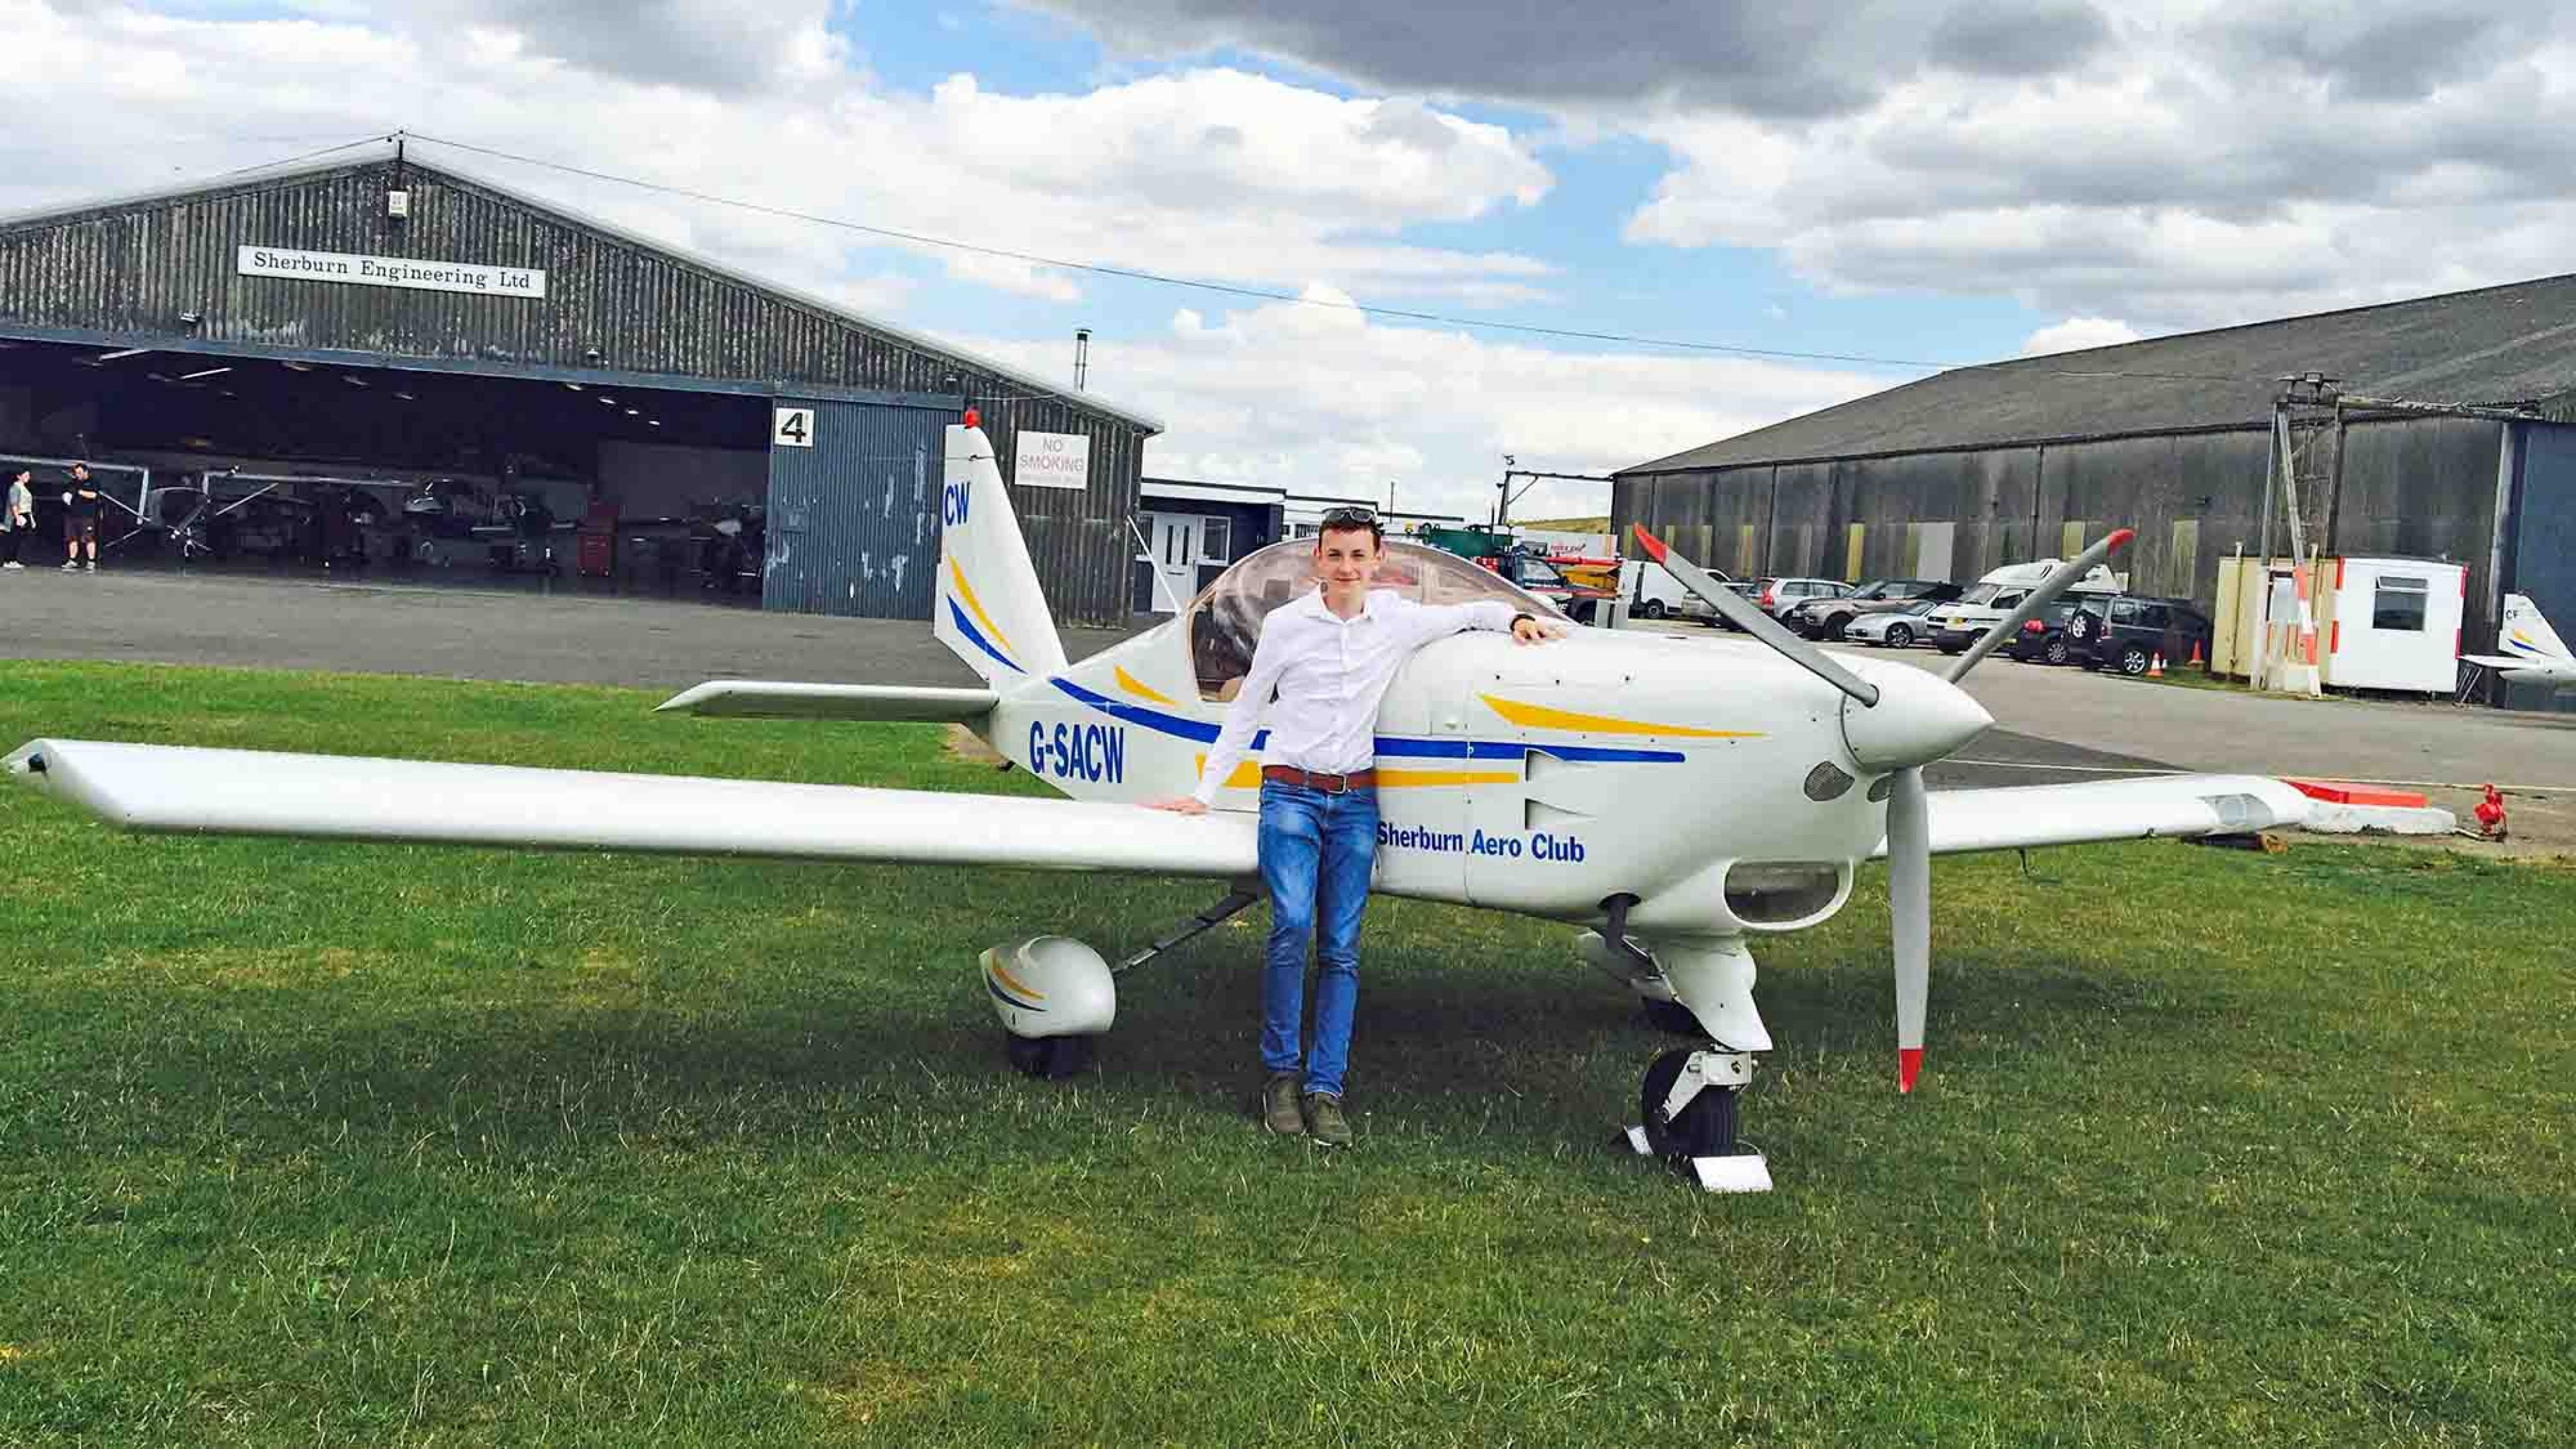 17-year-old Republic of Ireland student, Stephen Daly, preparing for flight at Sherburn Aero Club (credit to Sherburn Aero Club)